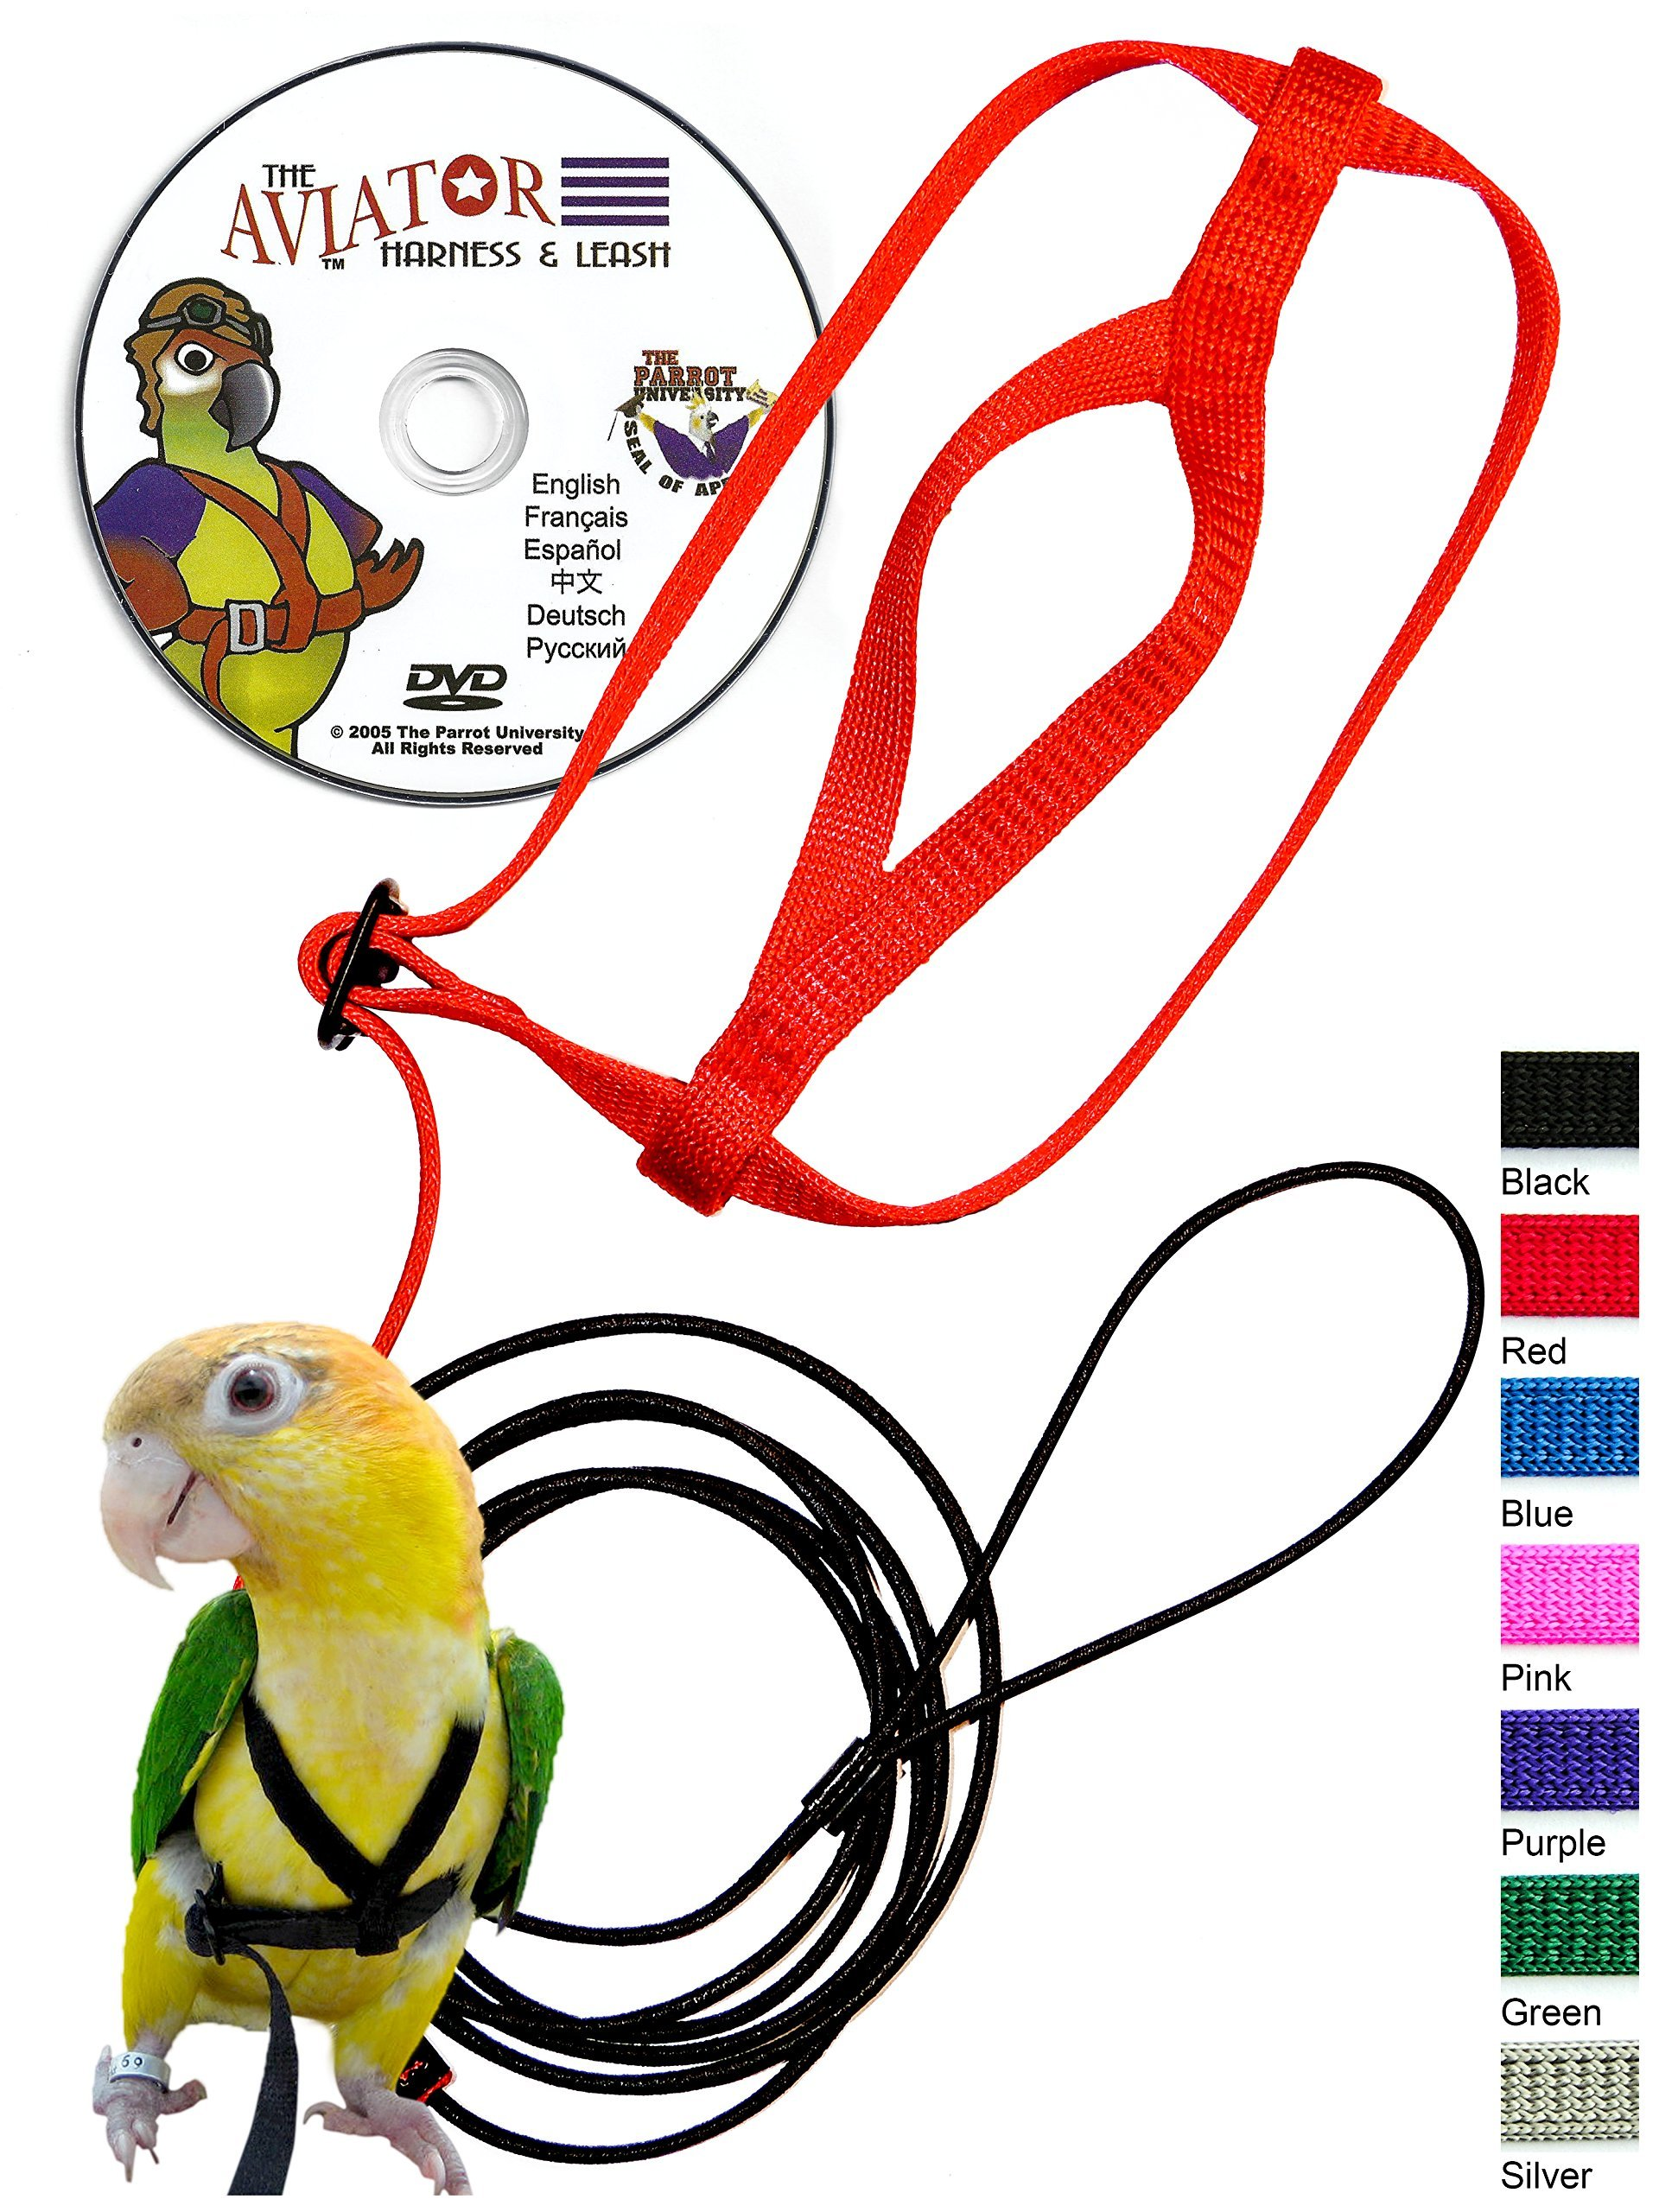 The AVIATOR Pet Bird Harness and Leash: X-Small Red by The AVIATOR (Image #1)